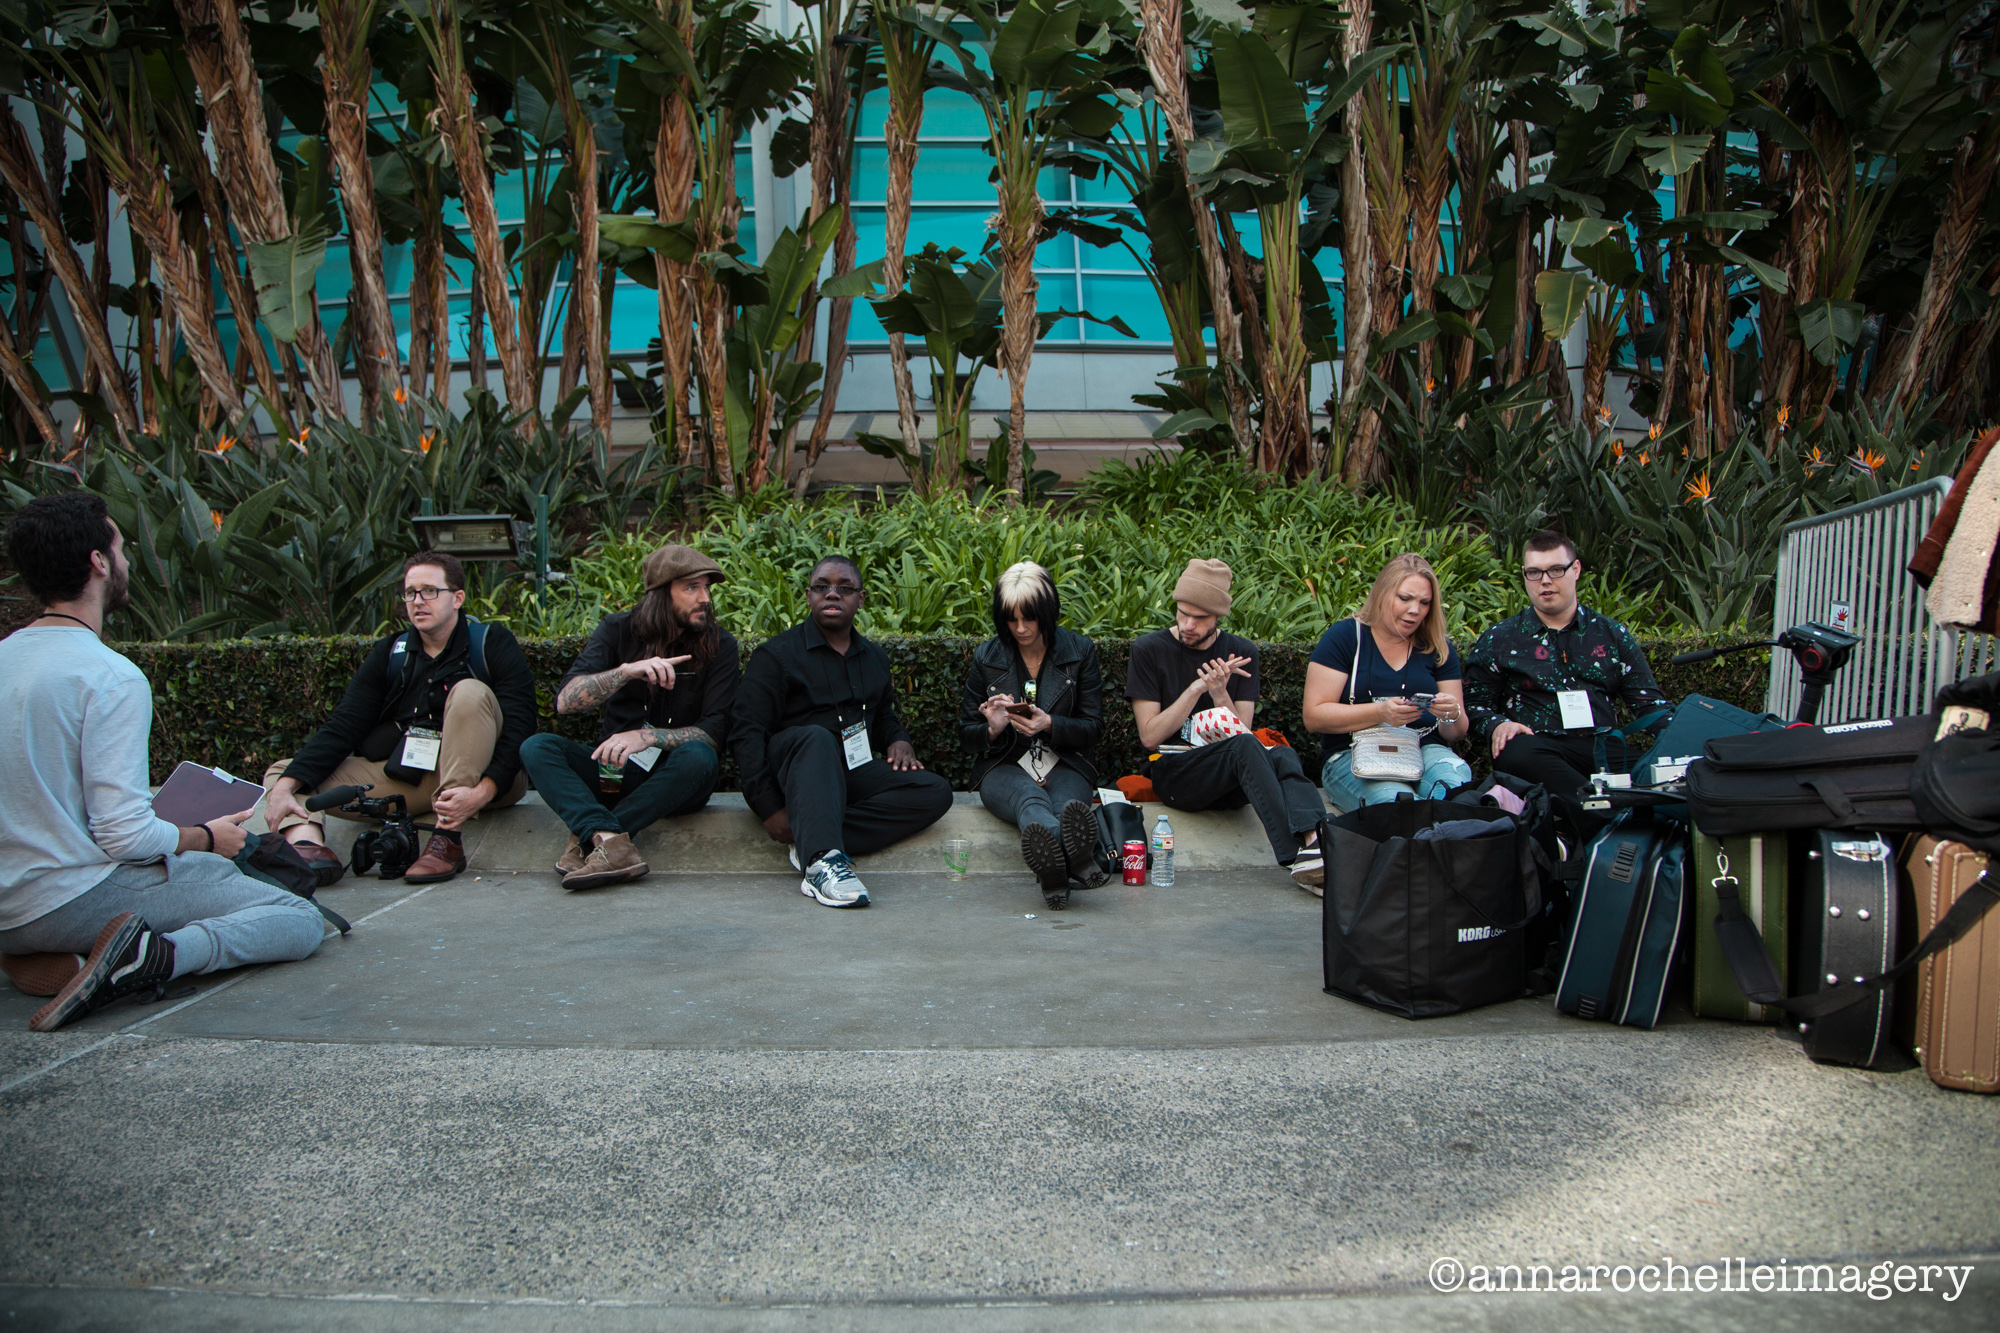 behindthescenes band namm heartstrings documentary anna rochelle imagery.jpg